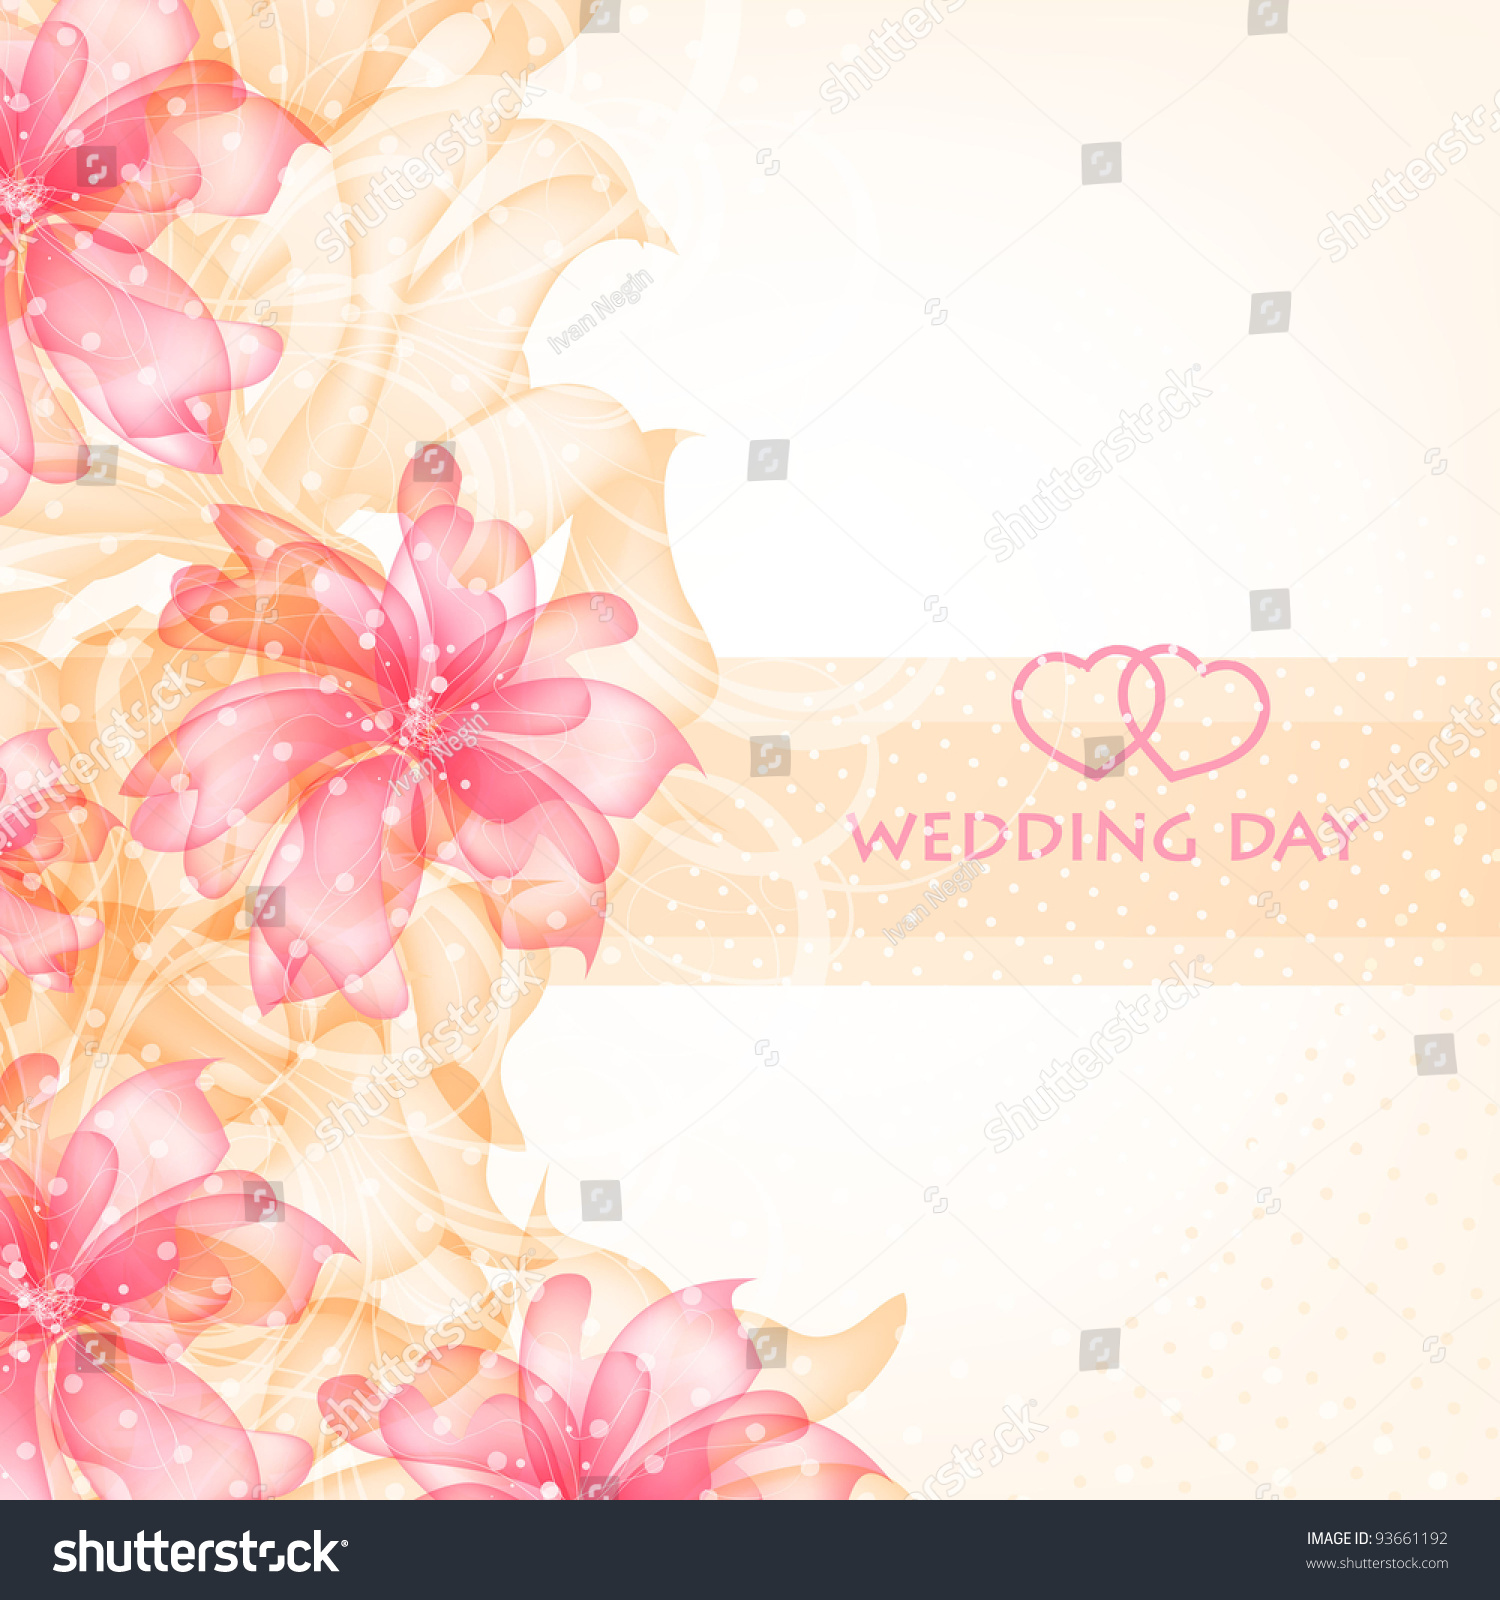 Wedding Card Invitation Abstract Floral Background Stock Vector 93661192 - Shutterstock